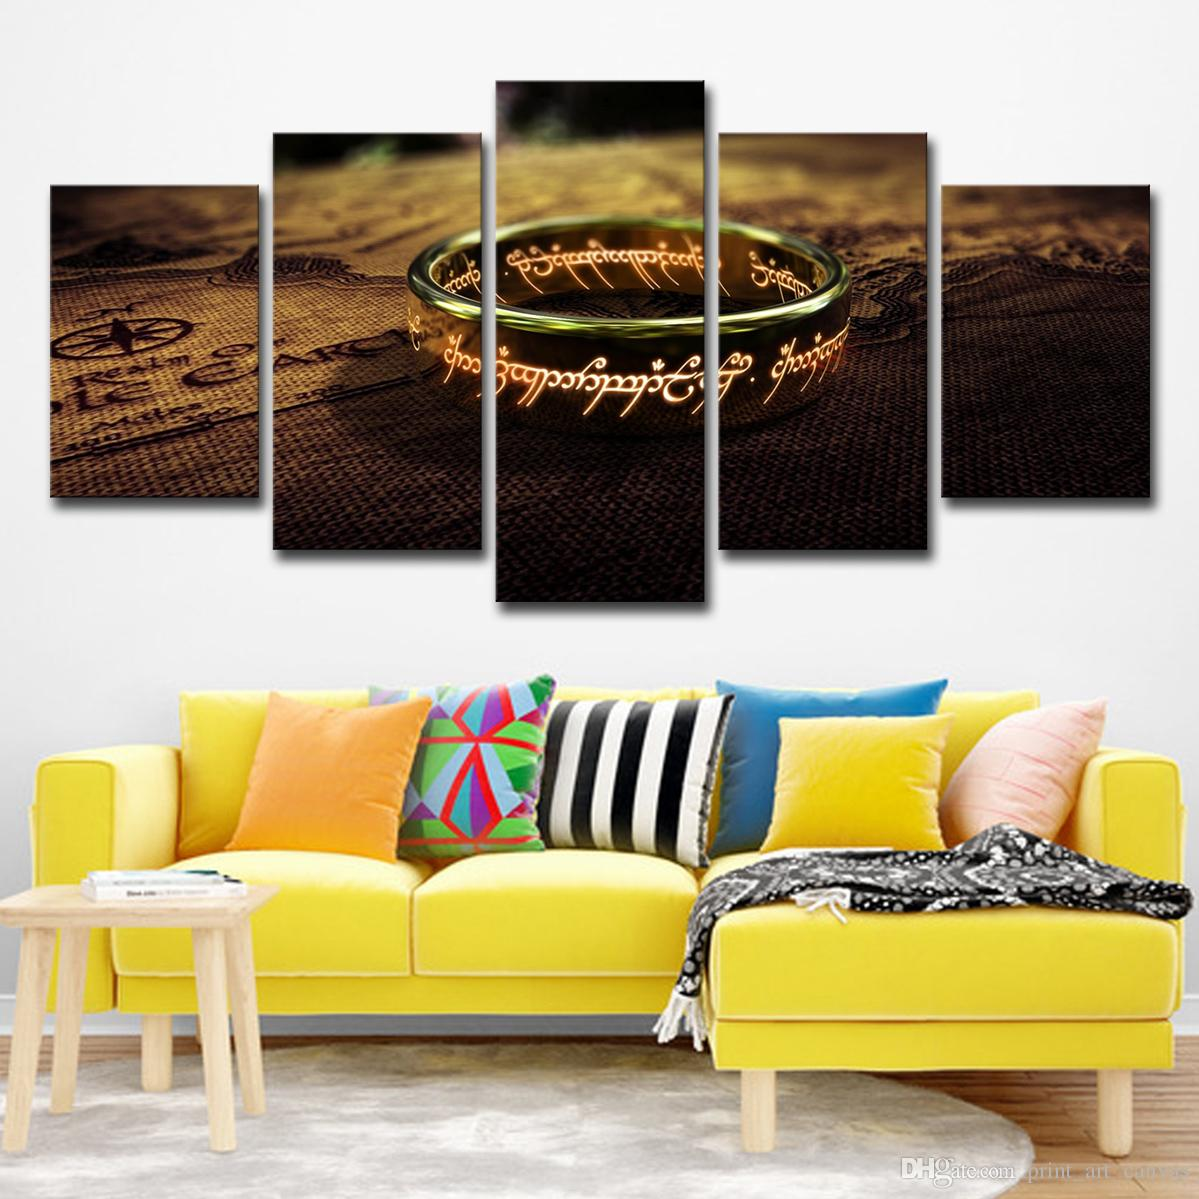 Canvas Wall Art Posters HD Prints Painting For Living Room Home Decor 5 Panel World Map Lord Of The Rings Pictures